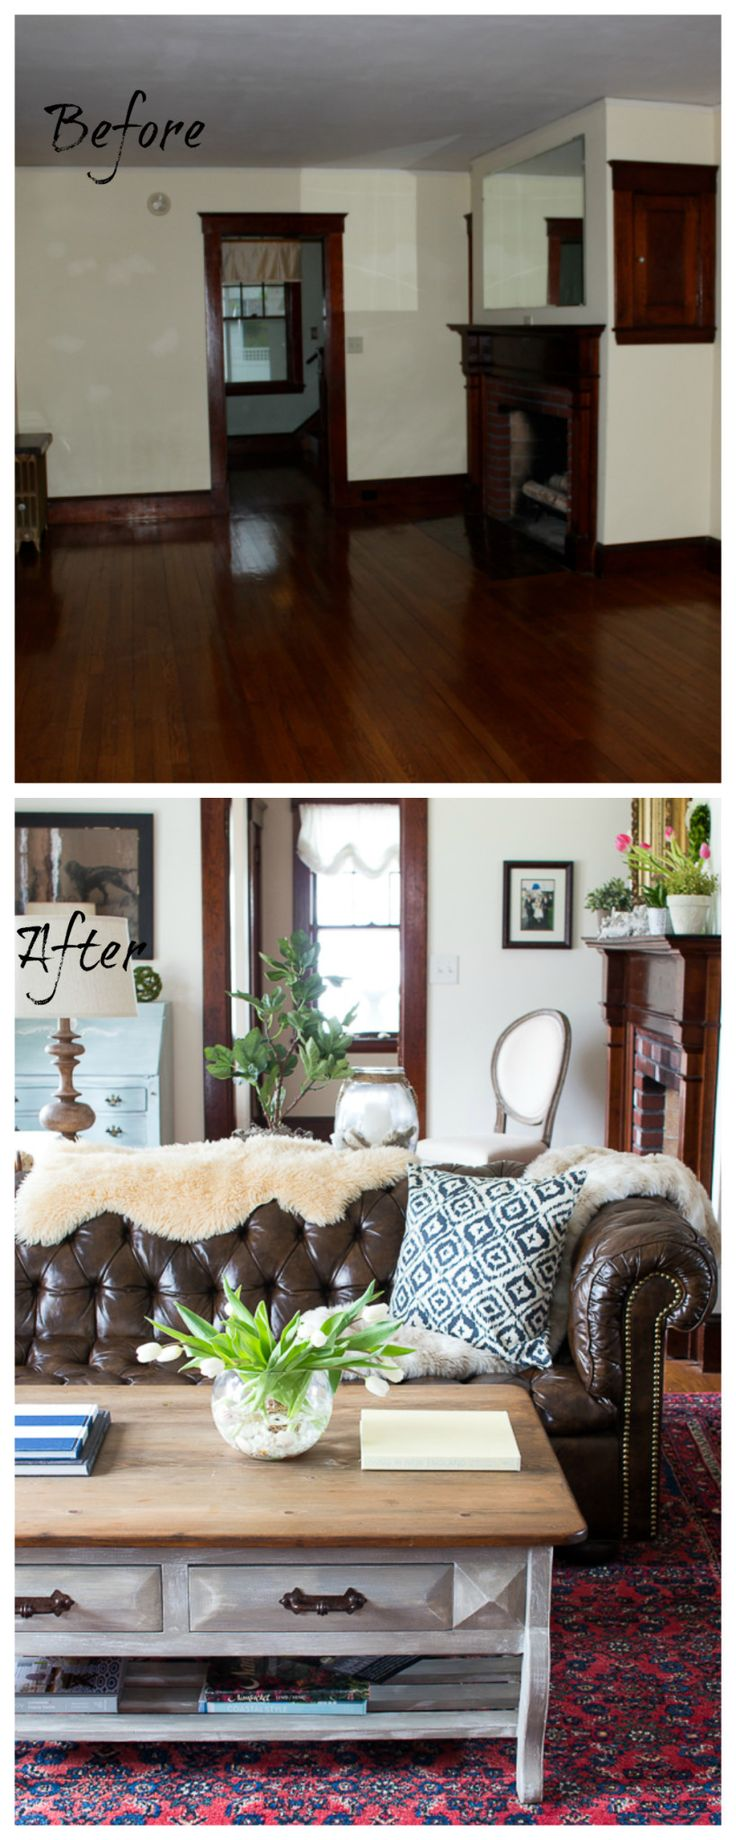 Living Room Renovation Before And After best 25+ before after home ideas on pinterest | before after